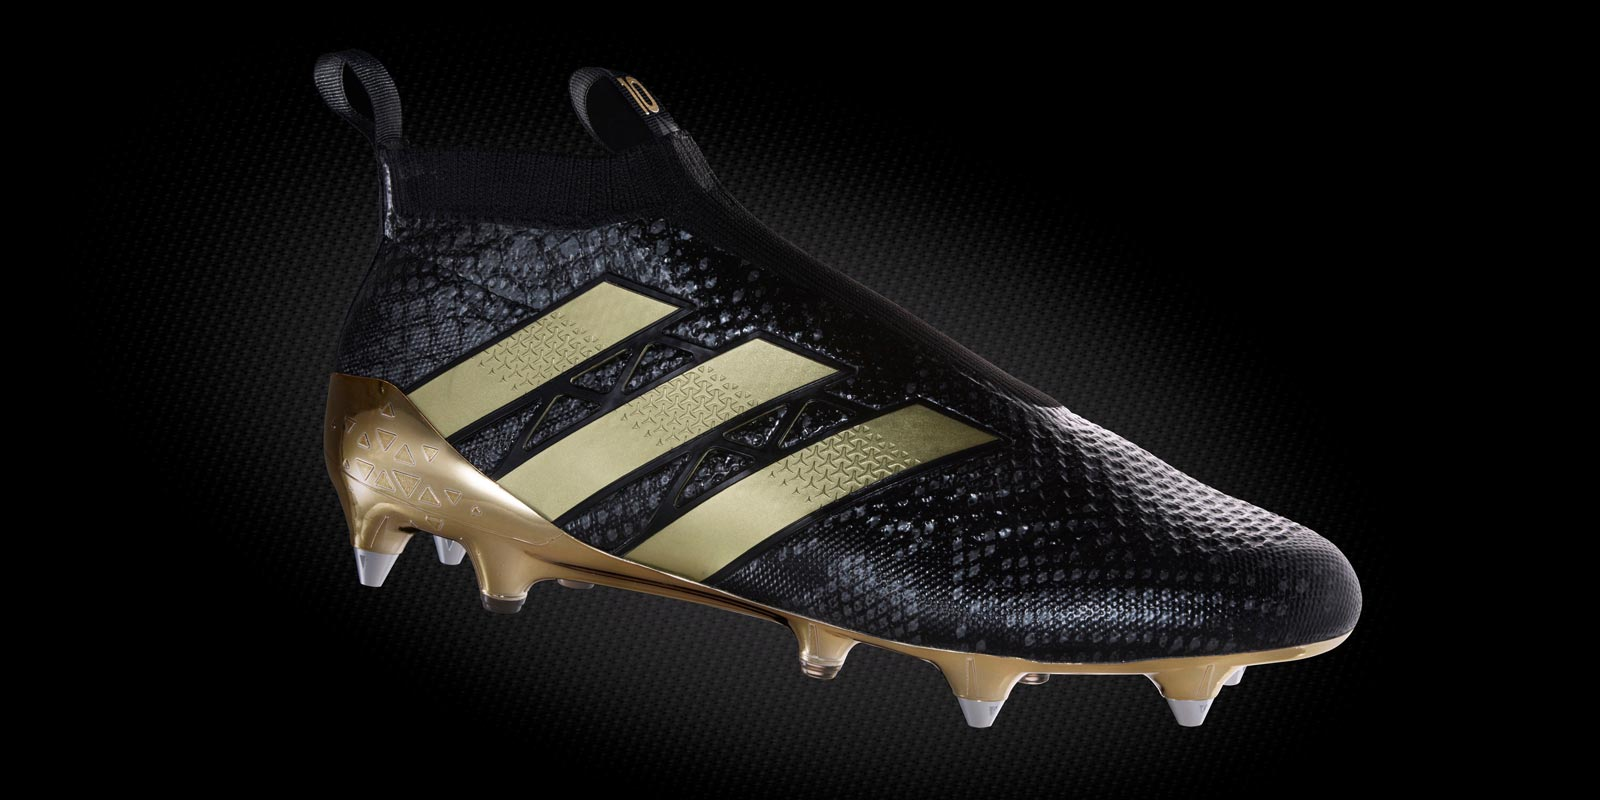 782d774be Adidas Pogbance Boots Released - Paul Pogba Boots